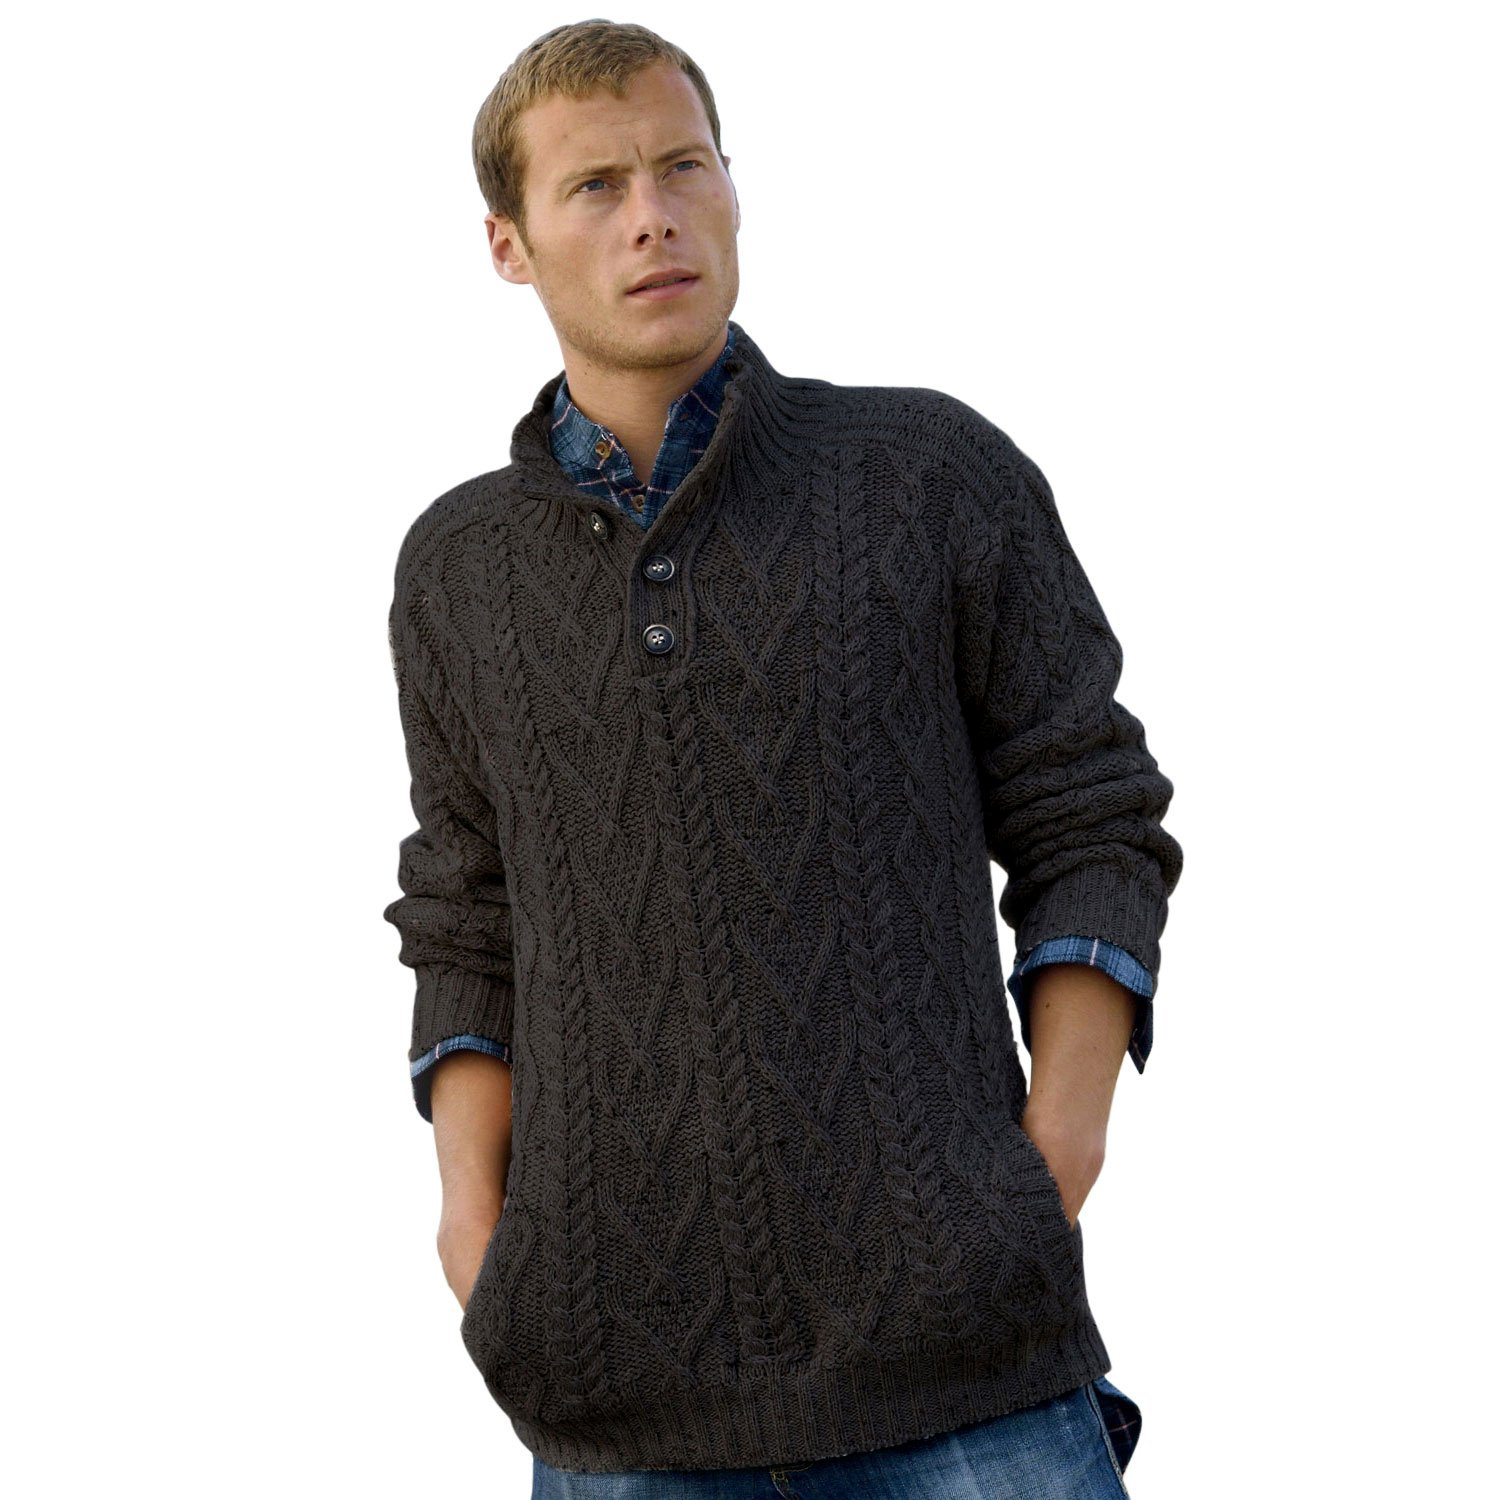 100% Irish Merino Wool Traditional Button Neck Aran Sweater by West End Knitwear, Charcoal Gray, Large